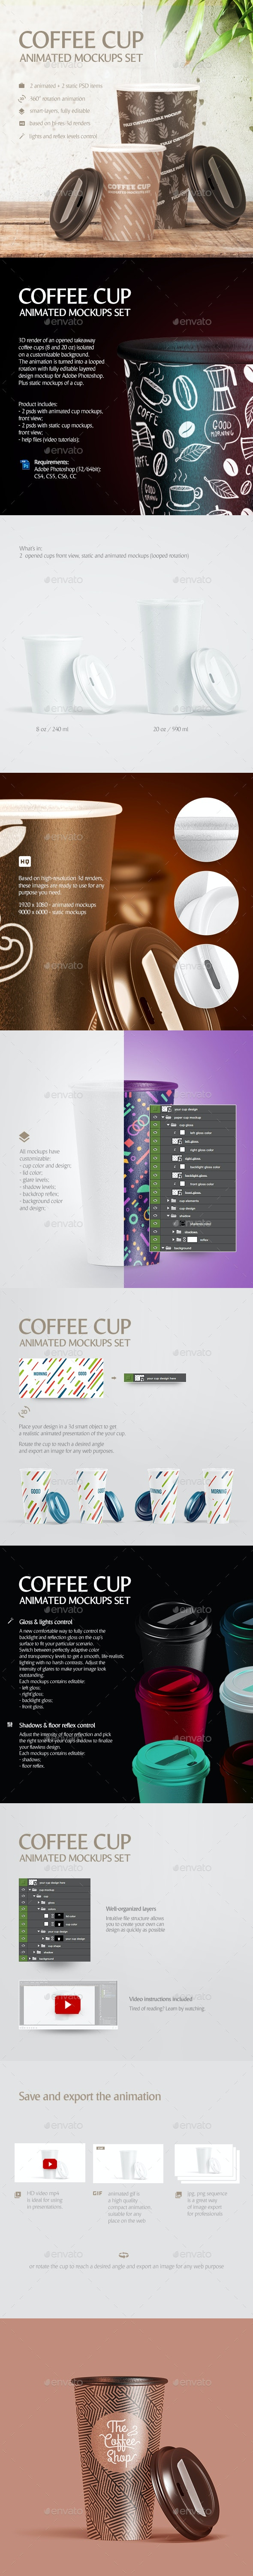 Coffee Cup Animated Mockups Set - Food and Drink Packaging